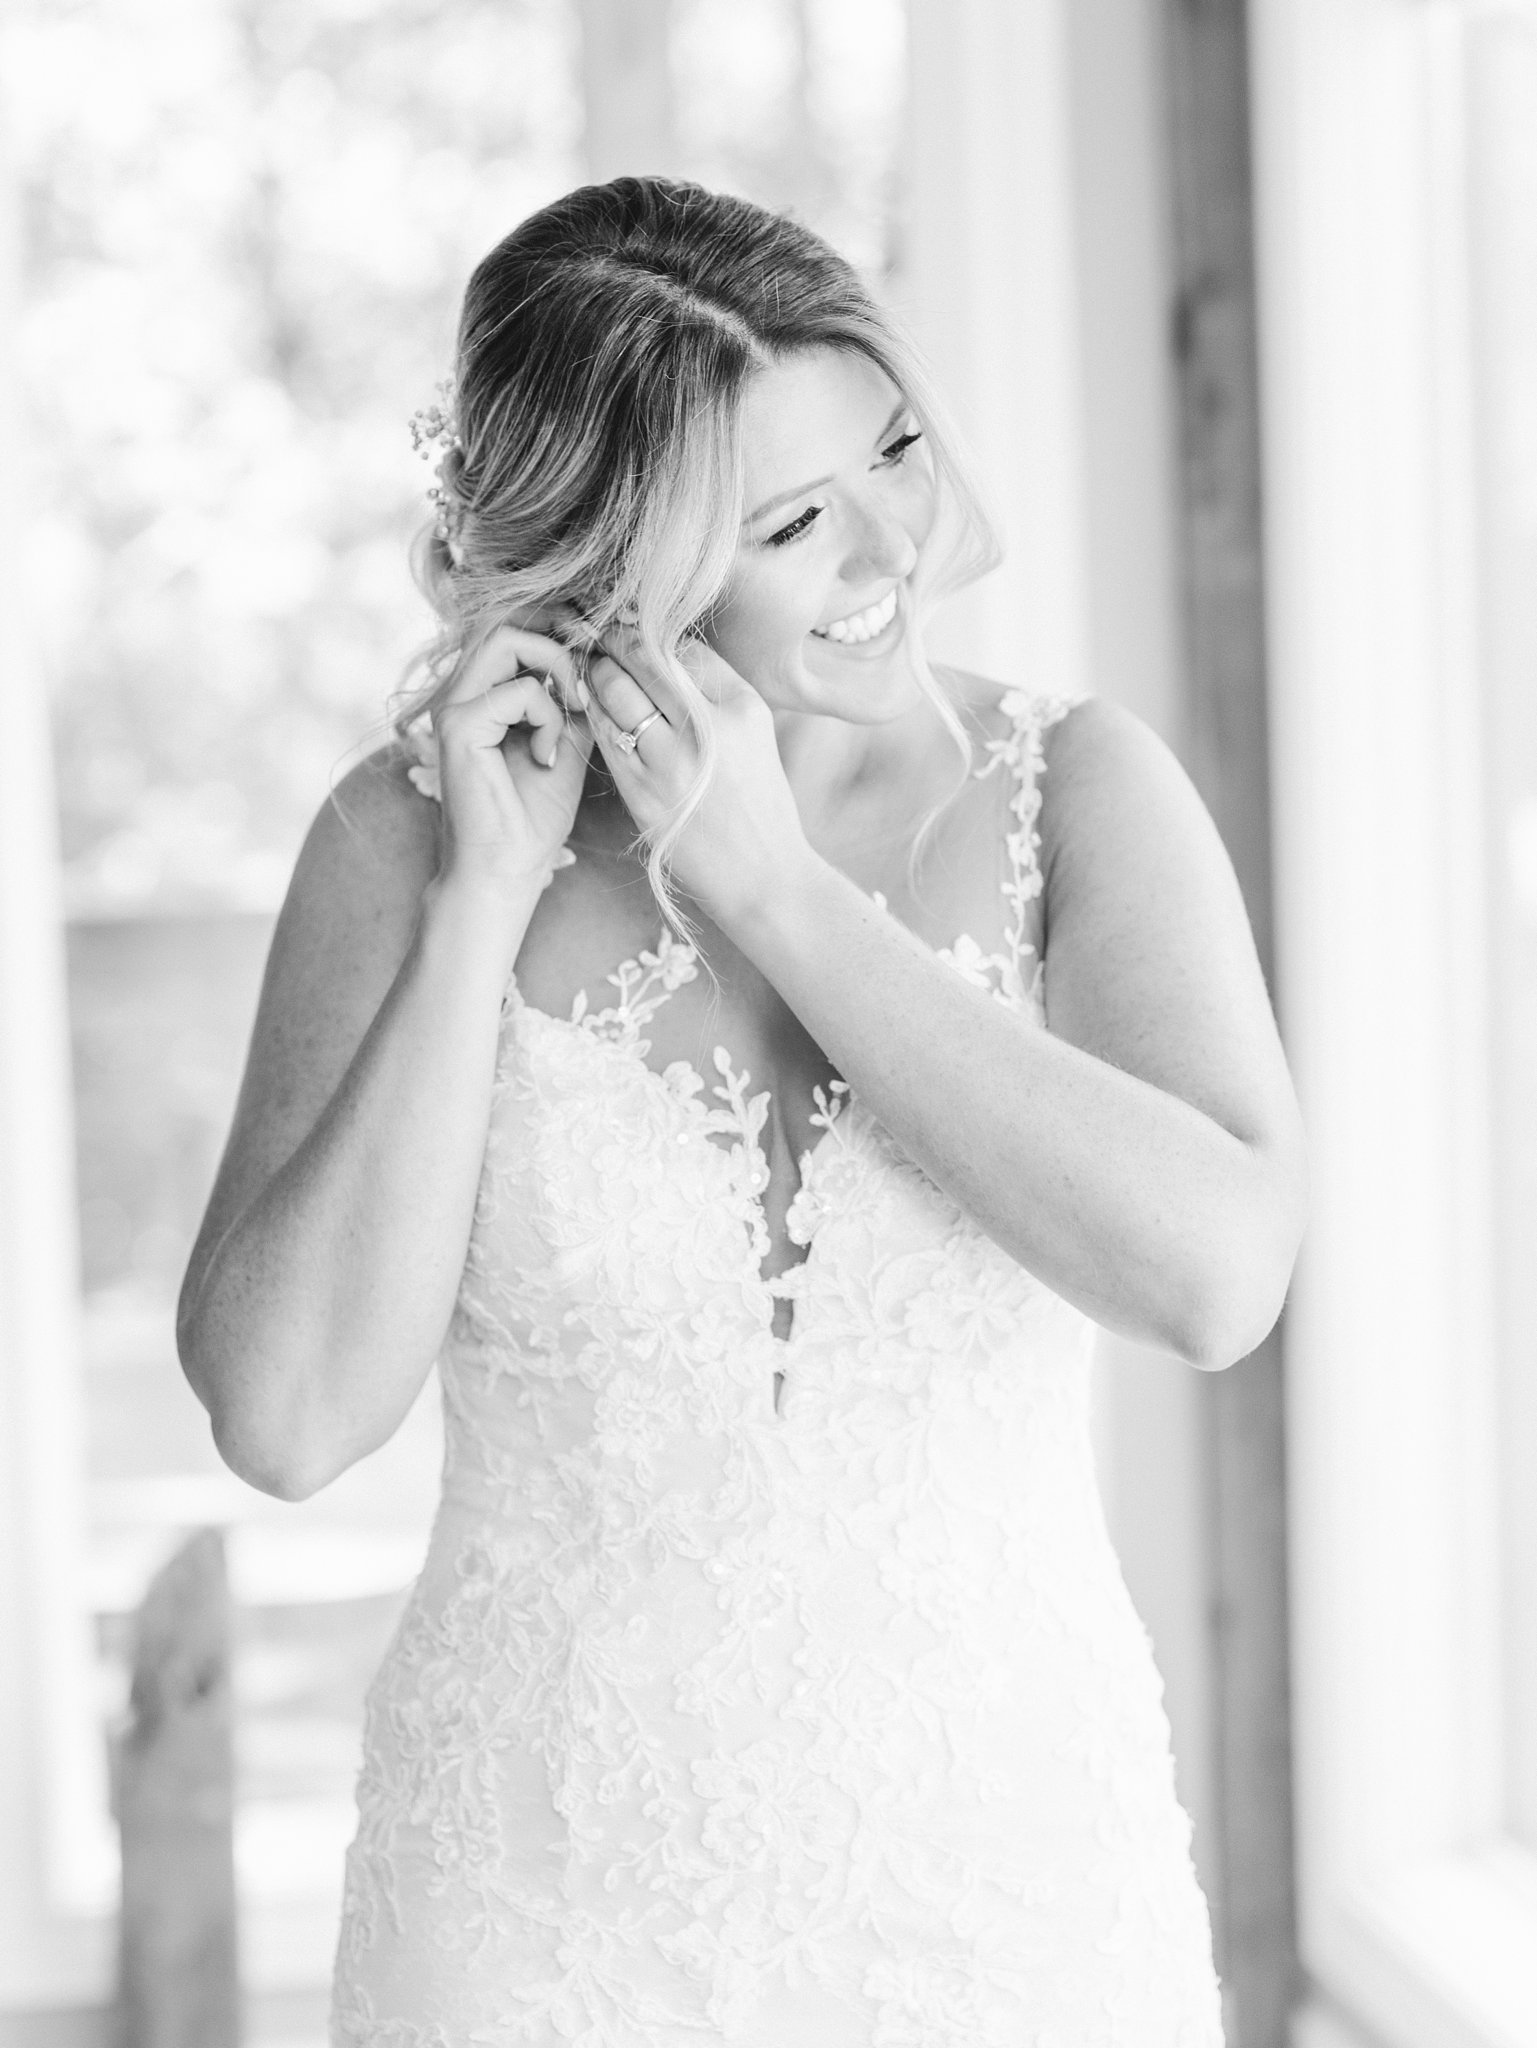 Bride putting on earrings, Howard, Private Estate Wedding Photos, Amy Pinder Photography